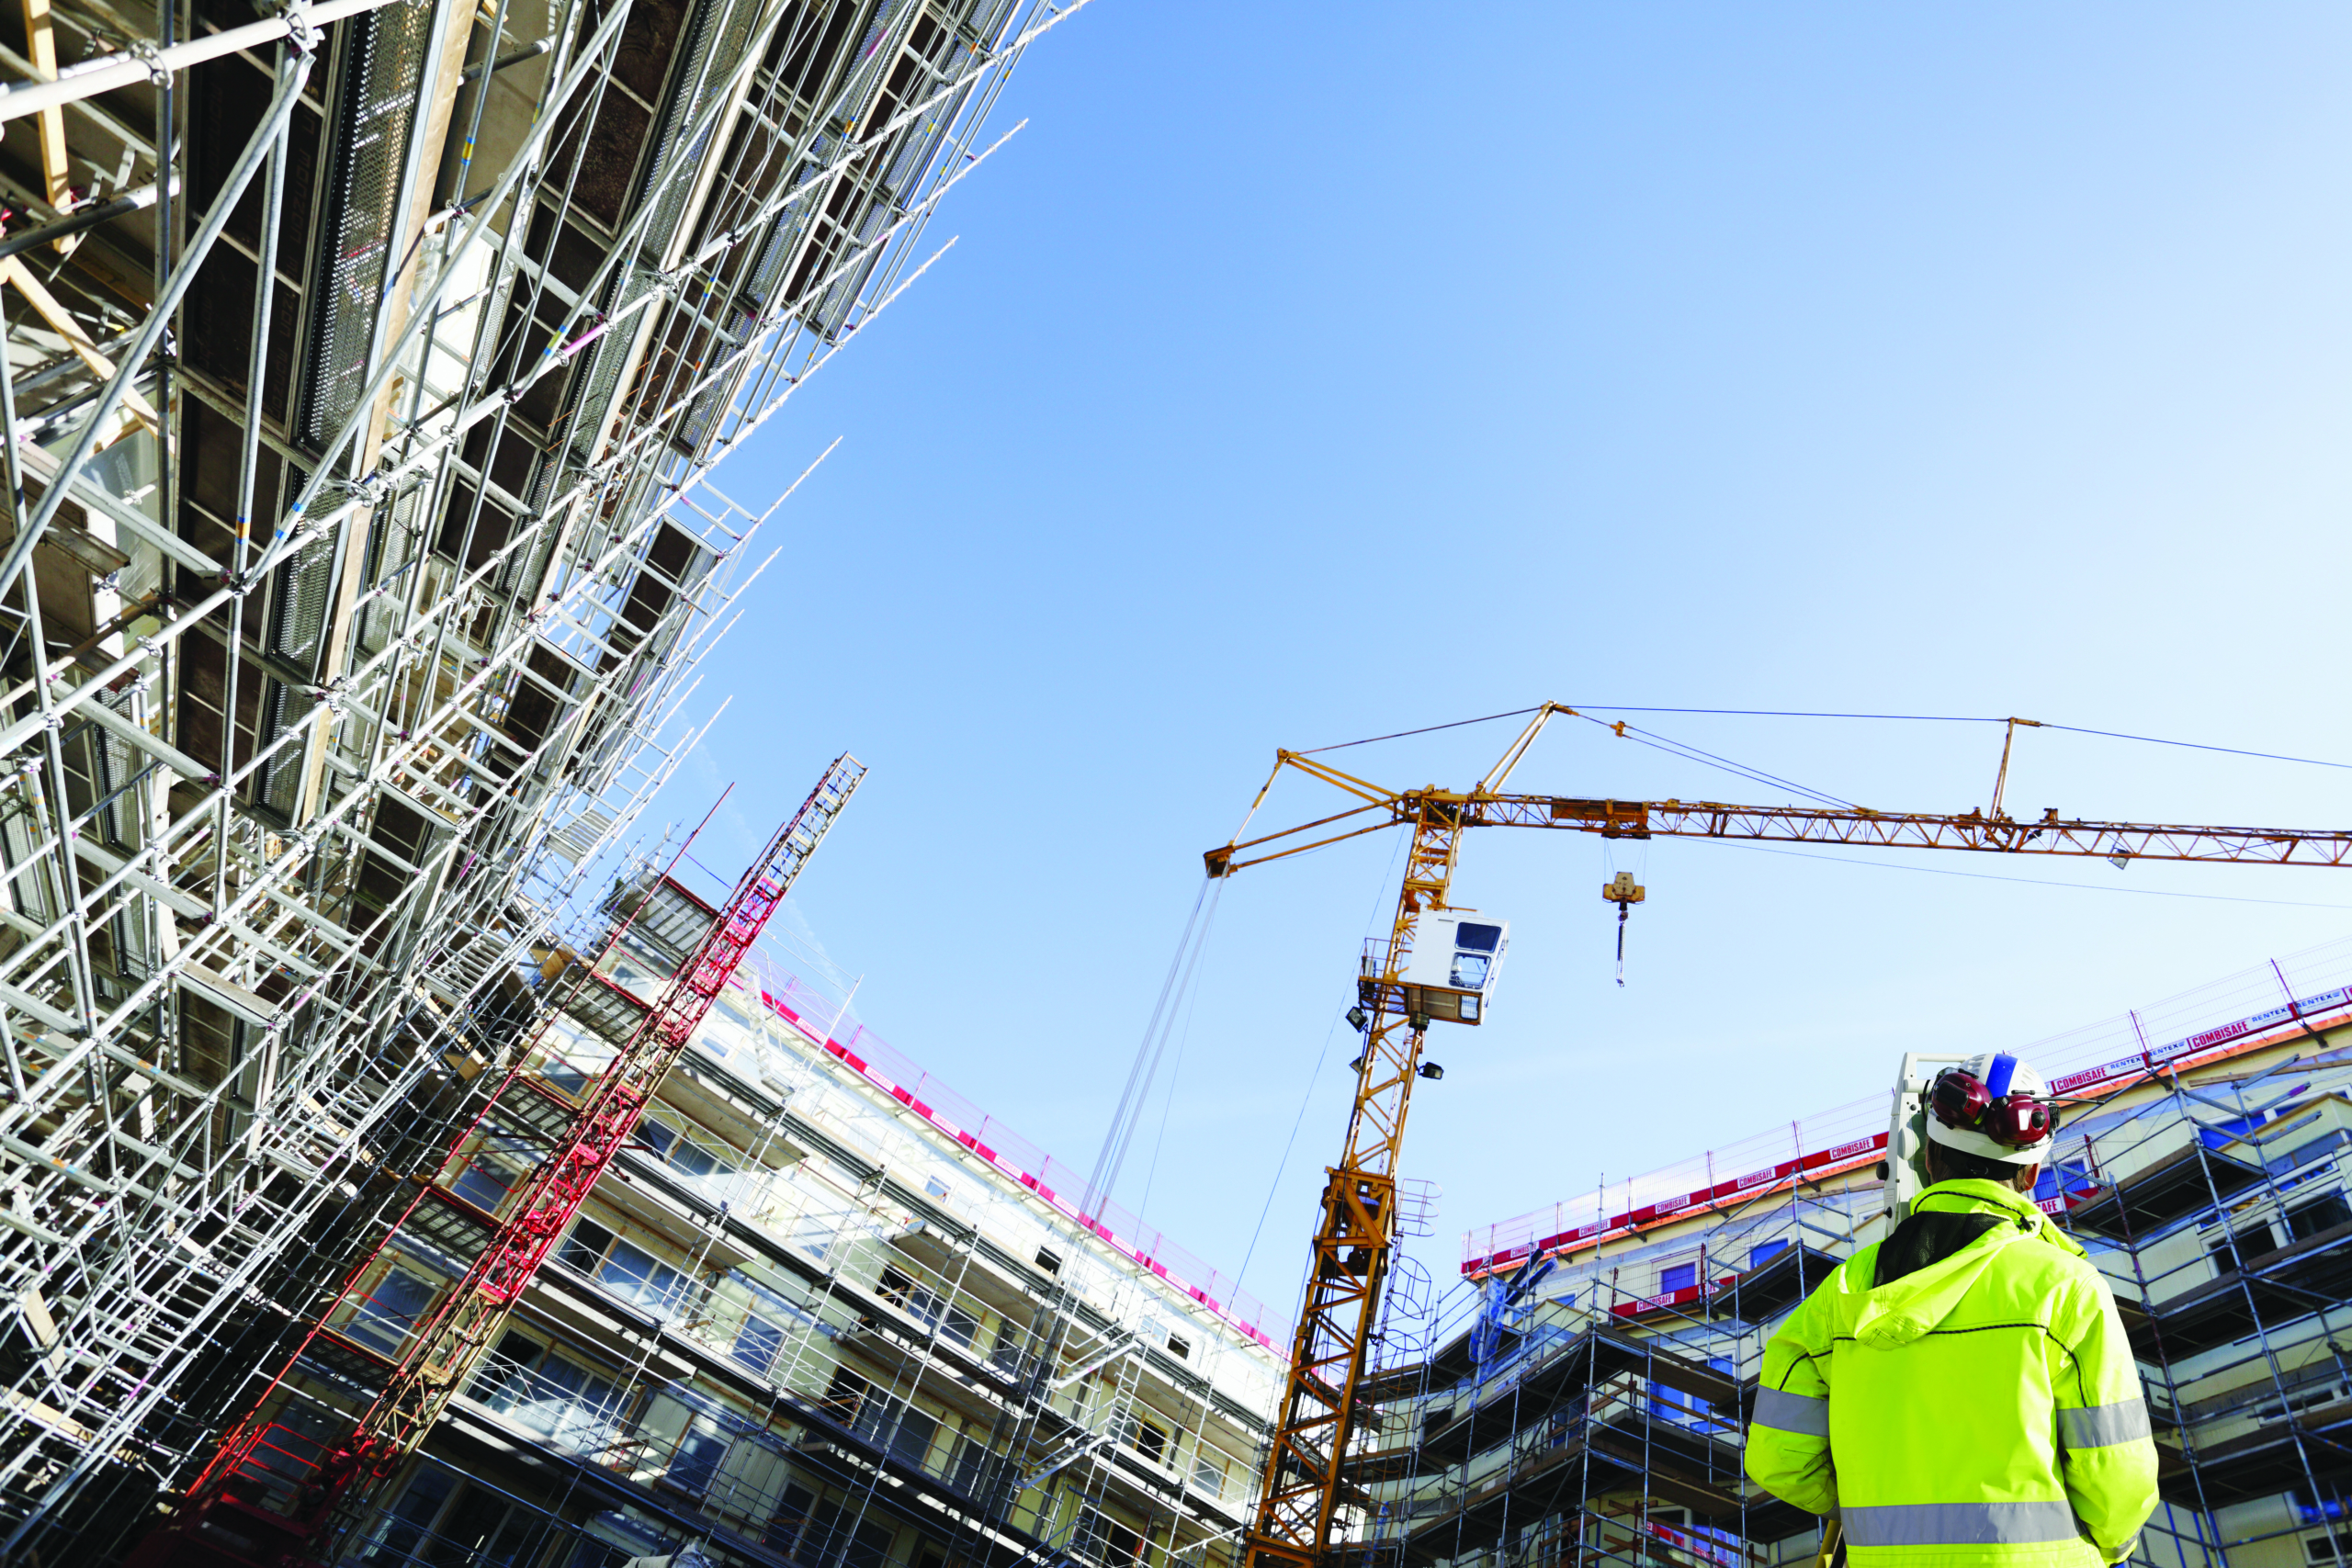 Virginia Workers Compensation & Personal Injury Lawsuits Against Subcontractors